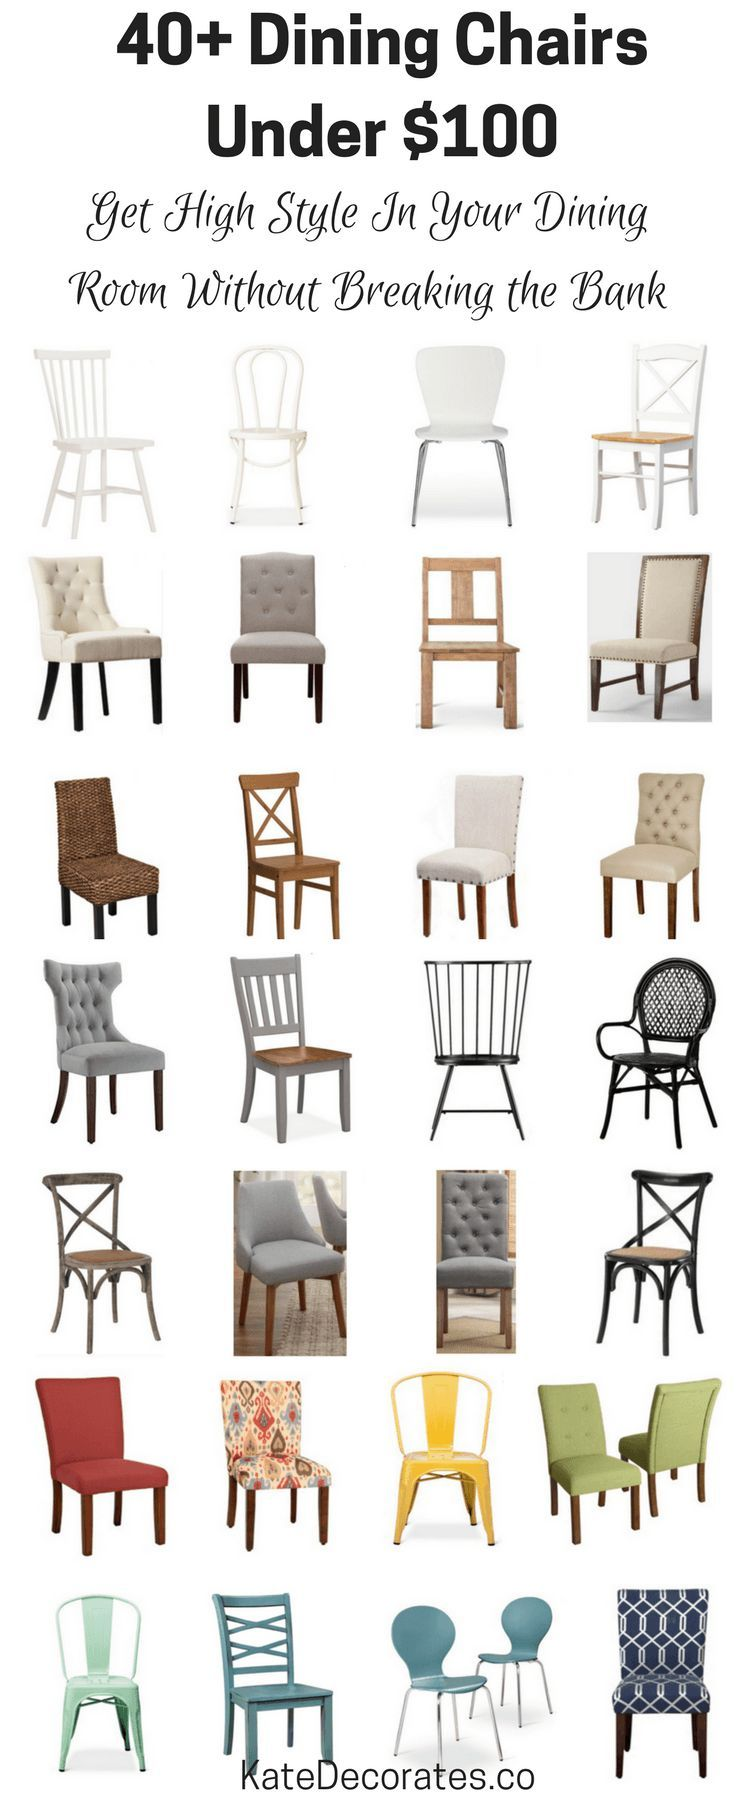 40 Affordable Dining Chairs Under $100  Dining Chairs Kitchens Glamorous Cheap Dining Room Sets Under 100 Review